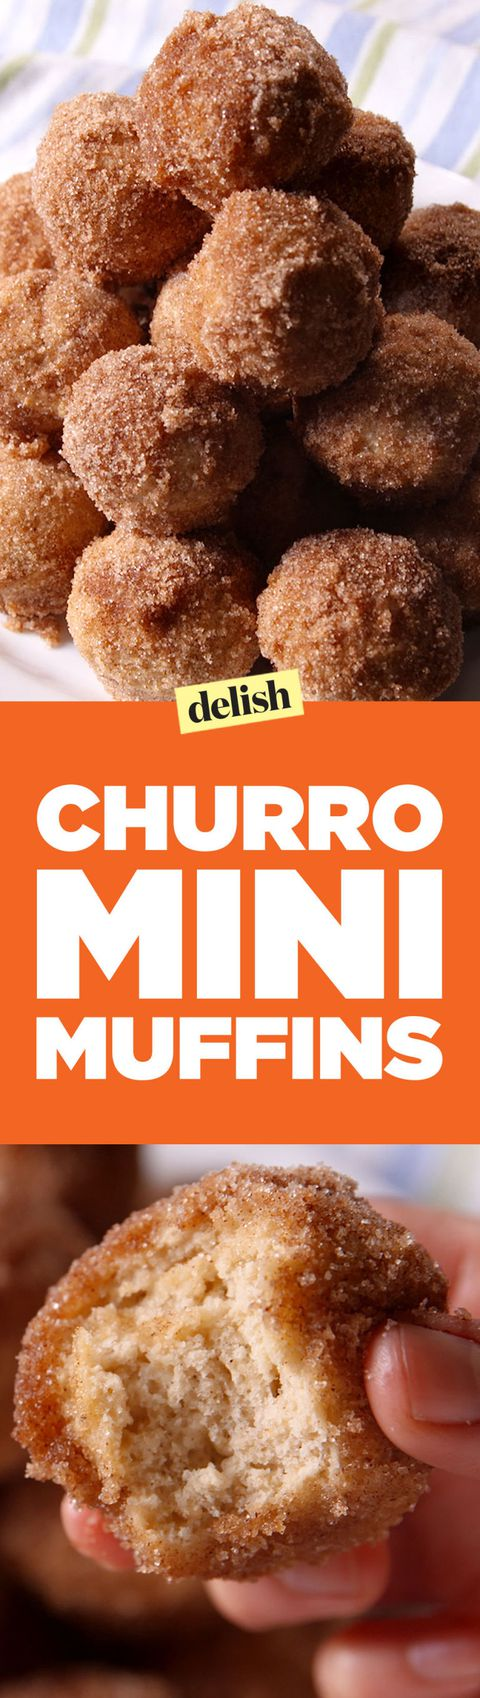 Churro Mini Muffins Pinterest